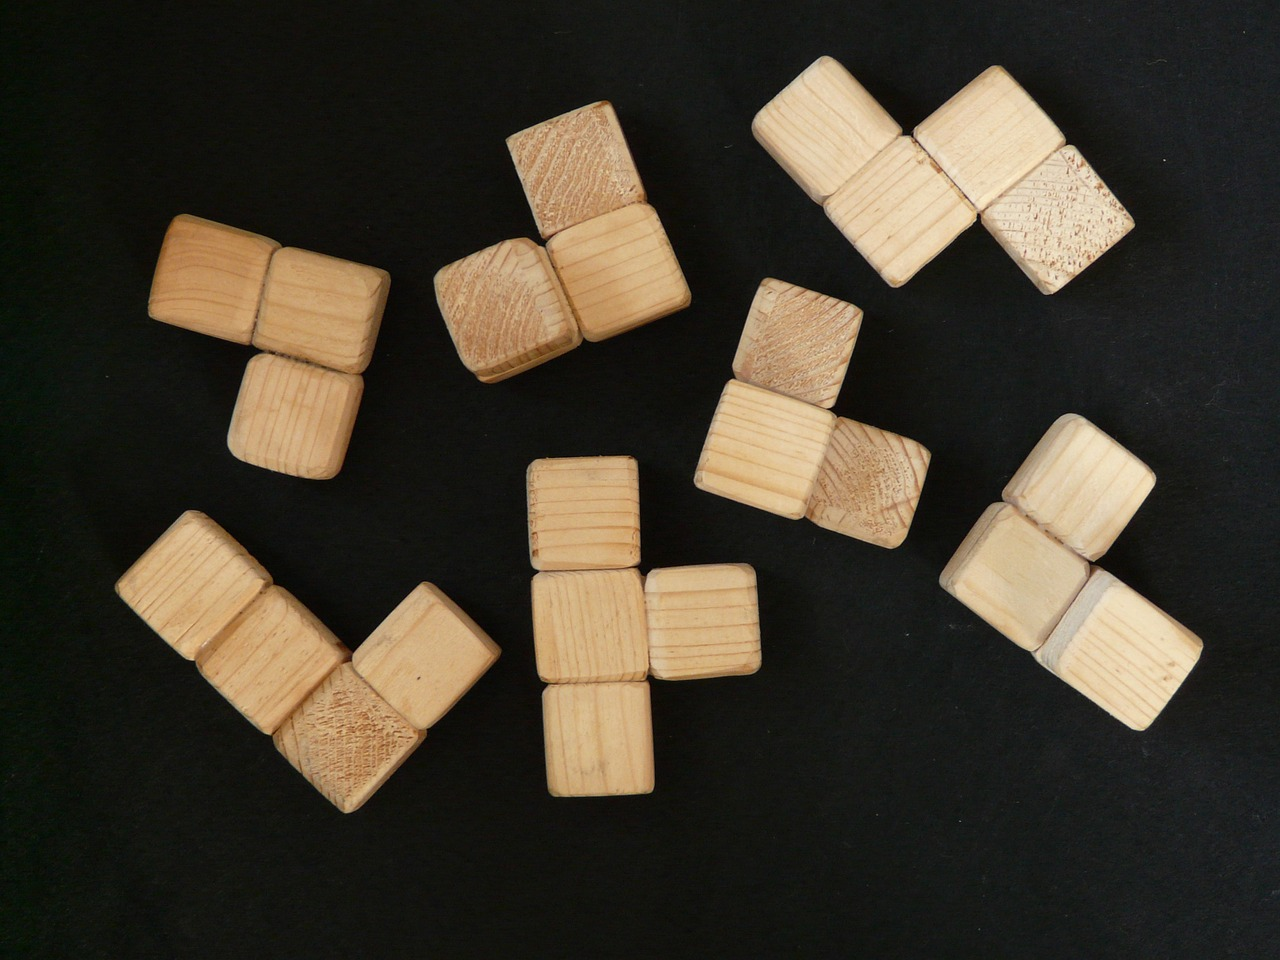 cube wood wooden toys free photo